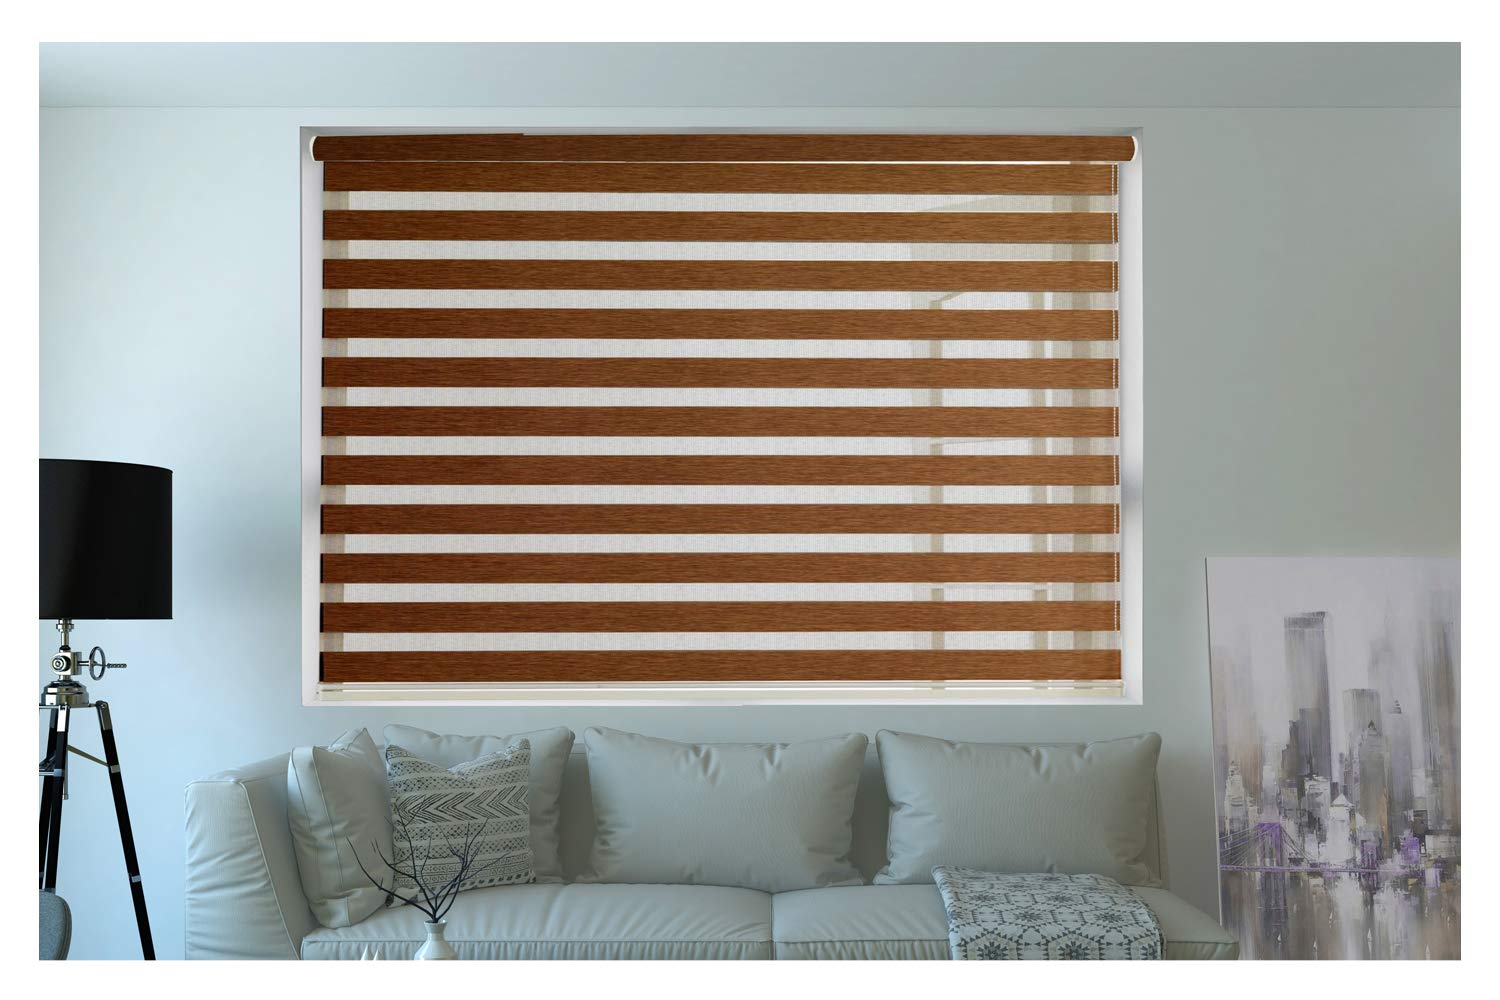 Buy Zebra Blinds Wooden Blinds For Windows Or Outdoor Decor Of The Home Brown Online At Low Prices In India Amazon In